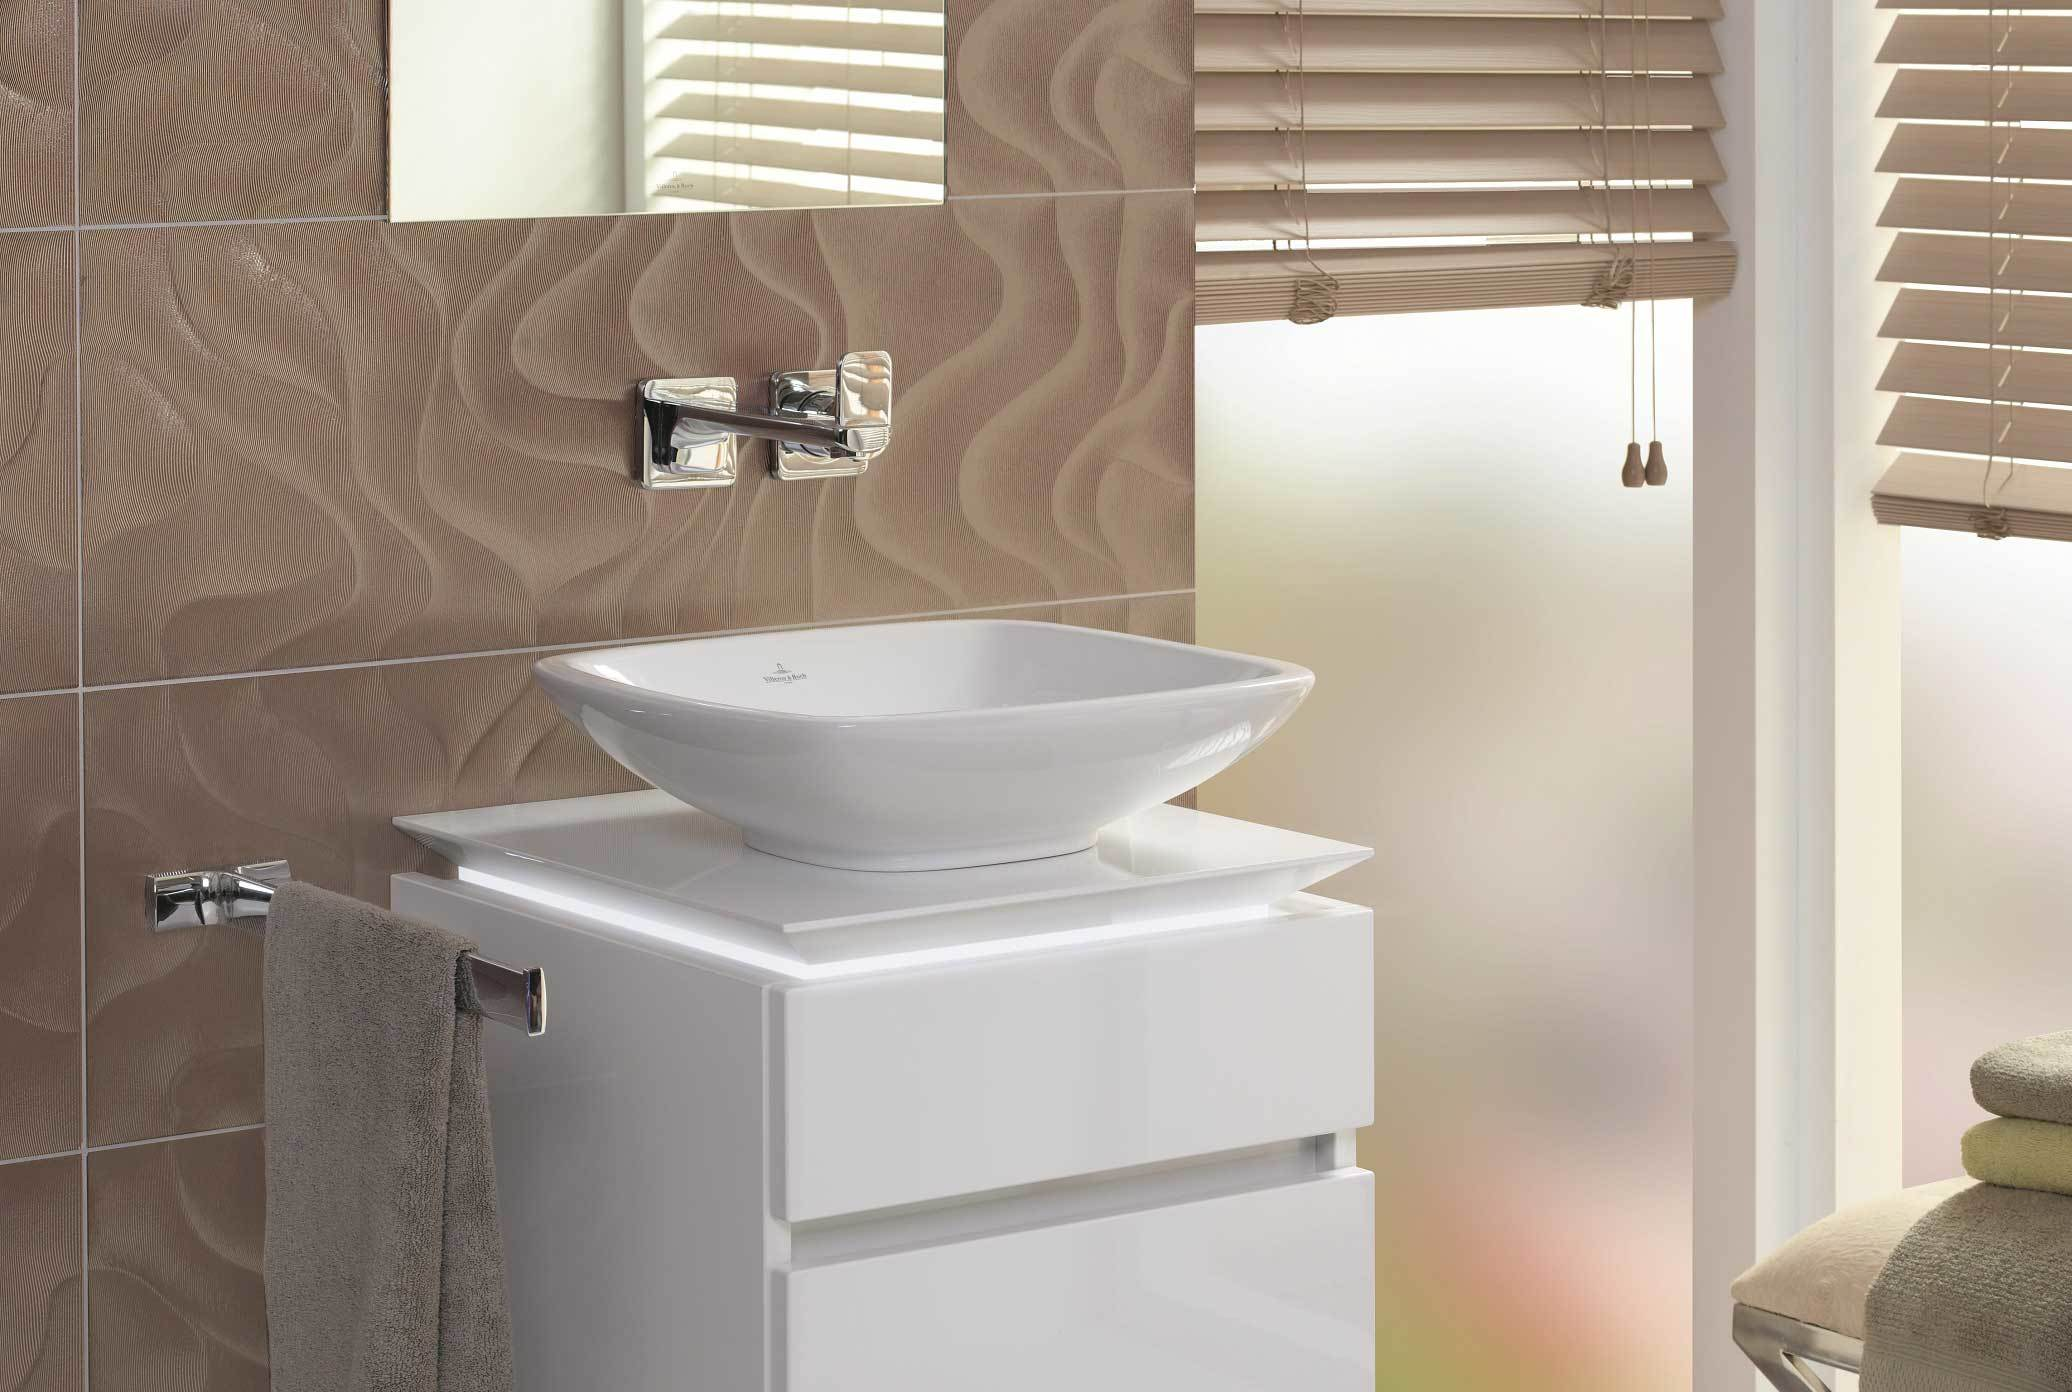 Surface Mounted Washbasin Rectangular Loop Friends By Villeroy Boch Bath Wellness Stylepark